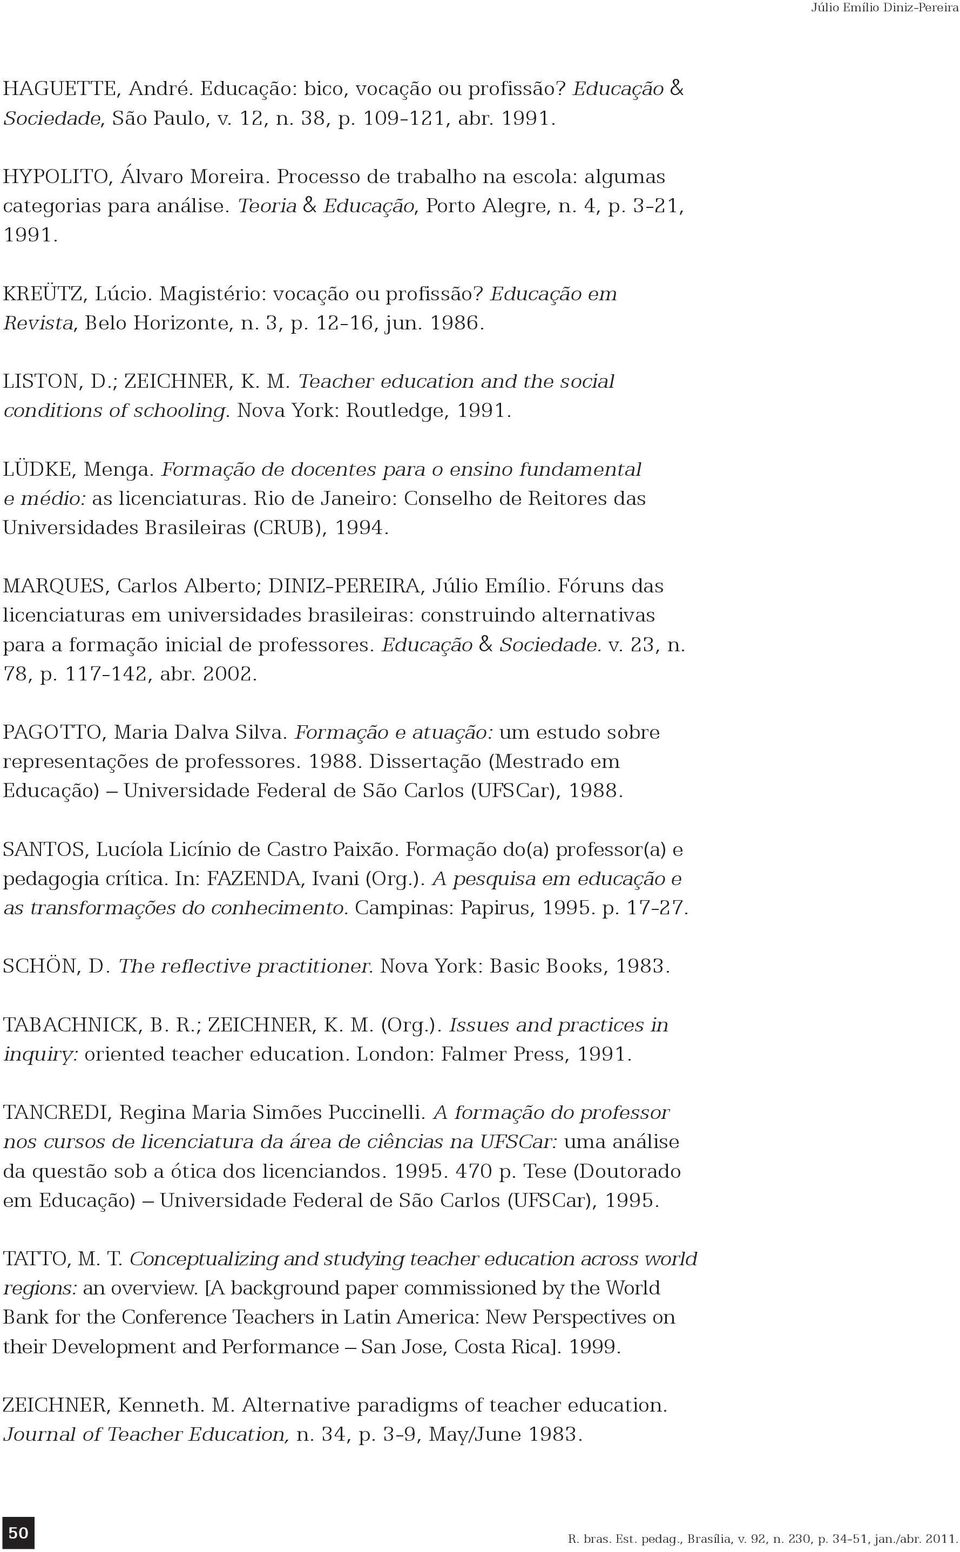 Educação em Revista, Belo Horizonte, n. 3, p. 12-16, jun. 1986. LISTON, D.; ZEICHNER, K. M. Teacher education and the social conditions of schooling. Nova York: Routledge, 1991. LÜDKE, Menga.